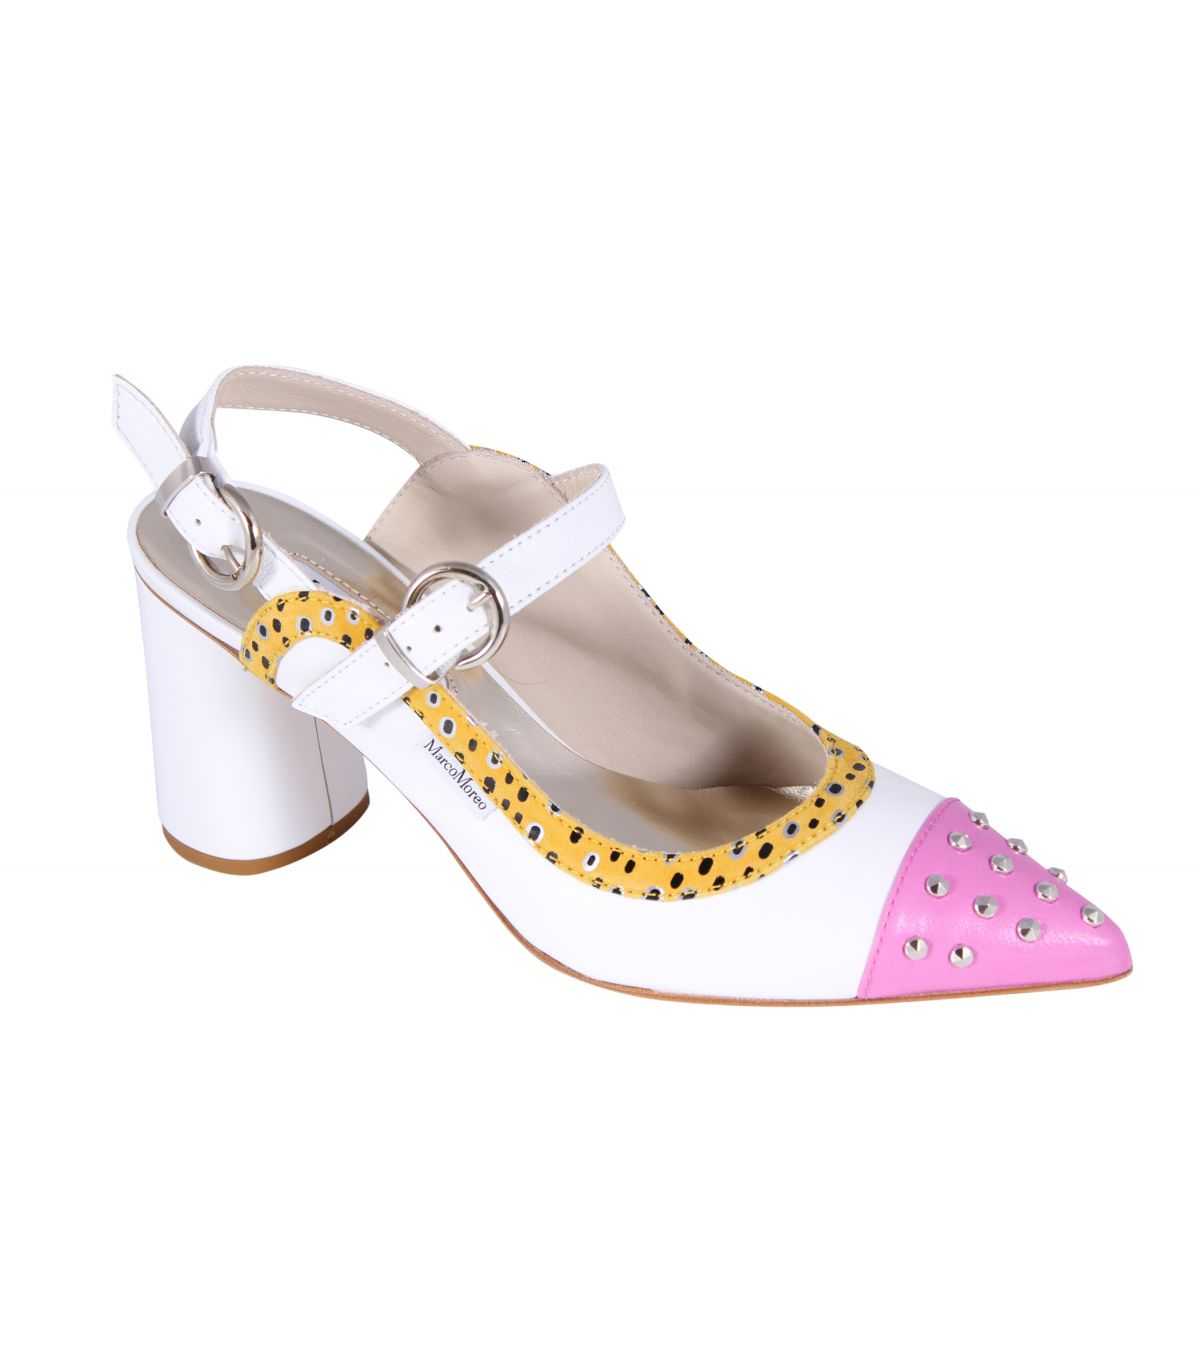 MARCO MOREO Marzia White Pointed Toe Sandal With Pink Toecap Image